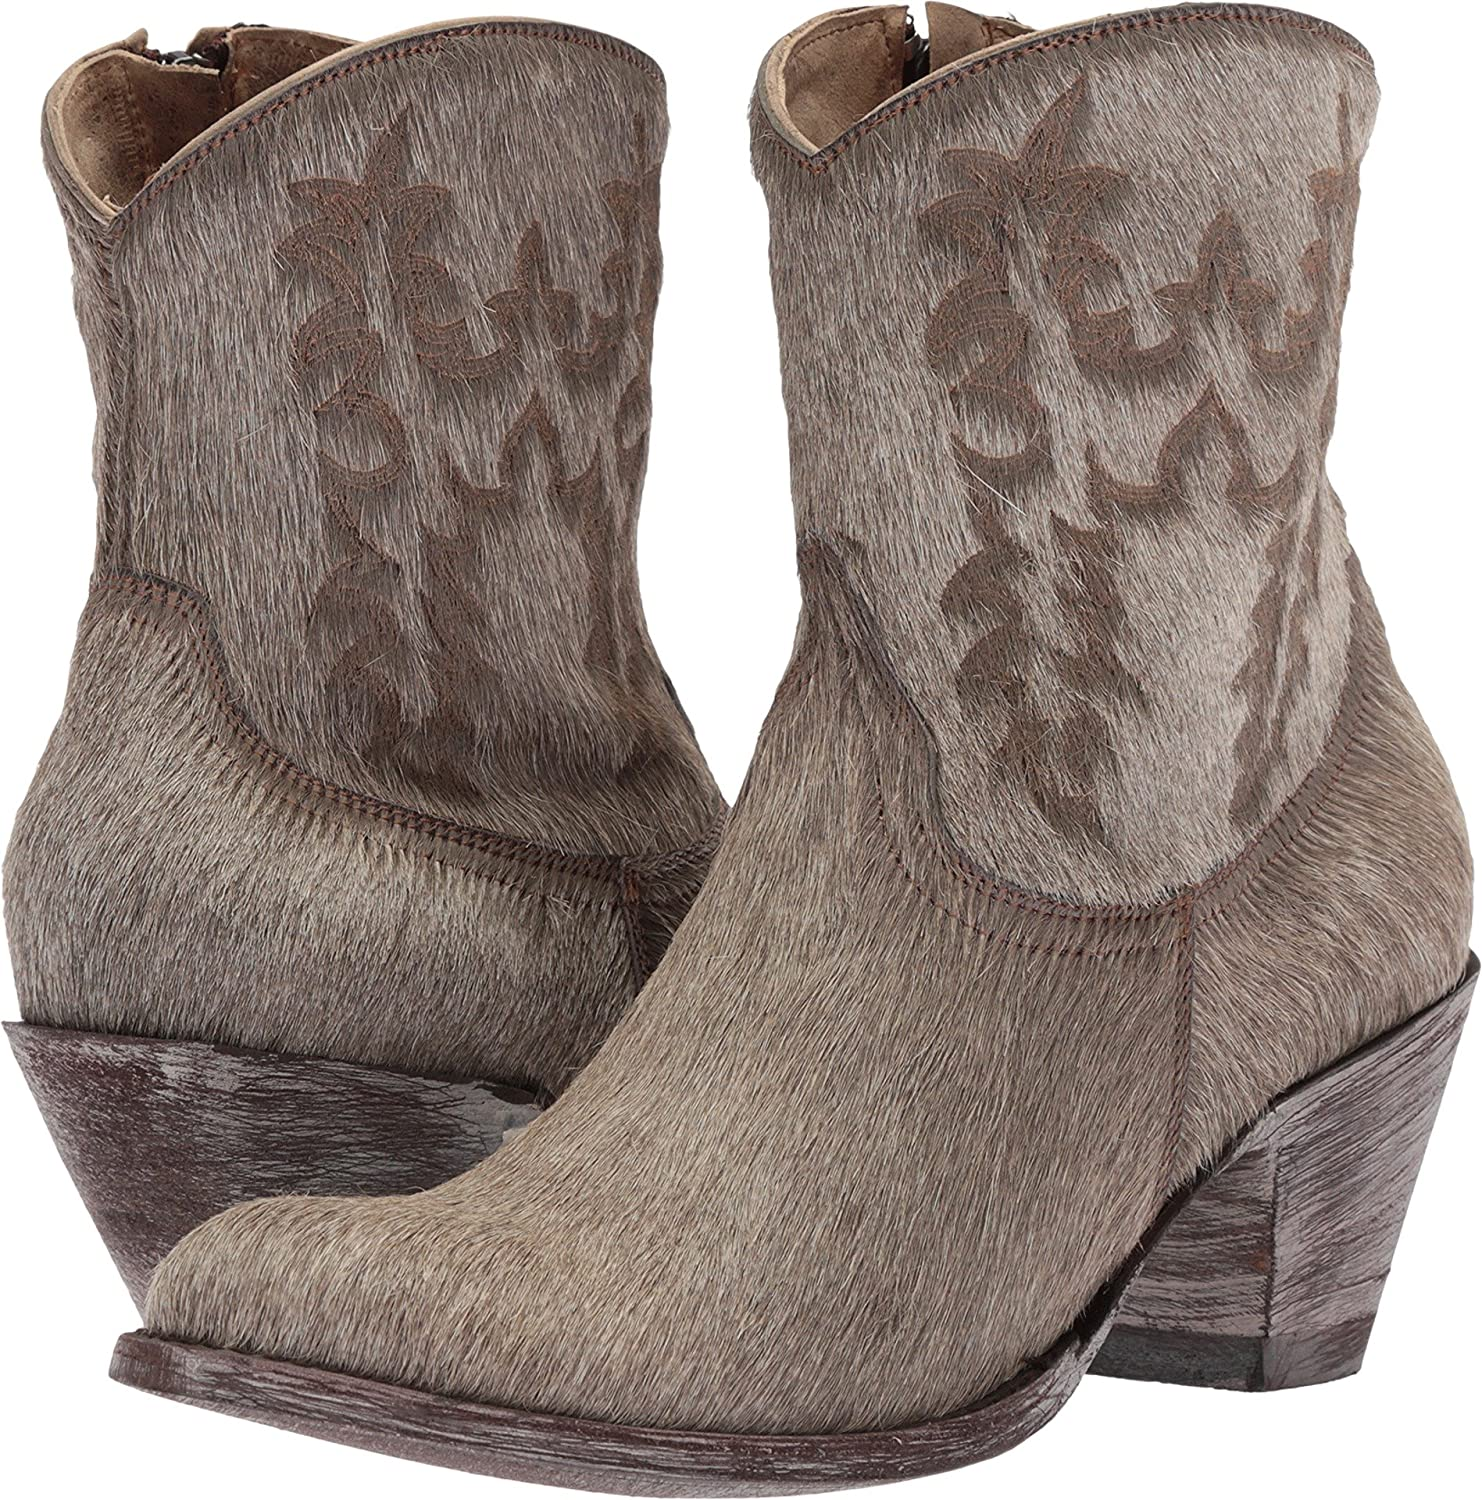 Old Gringo Women's Mayra US|BoneSnow Boot B076VP6MJ9 6.5 B